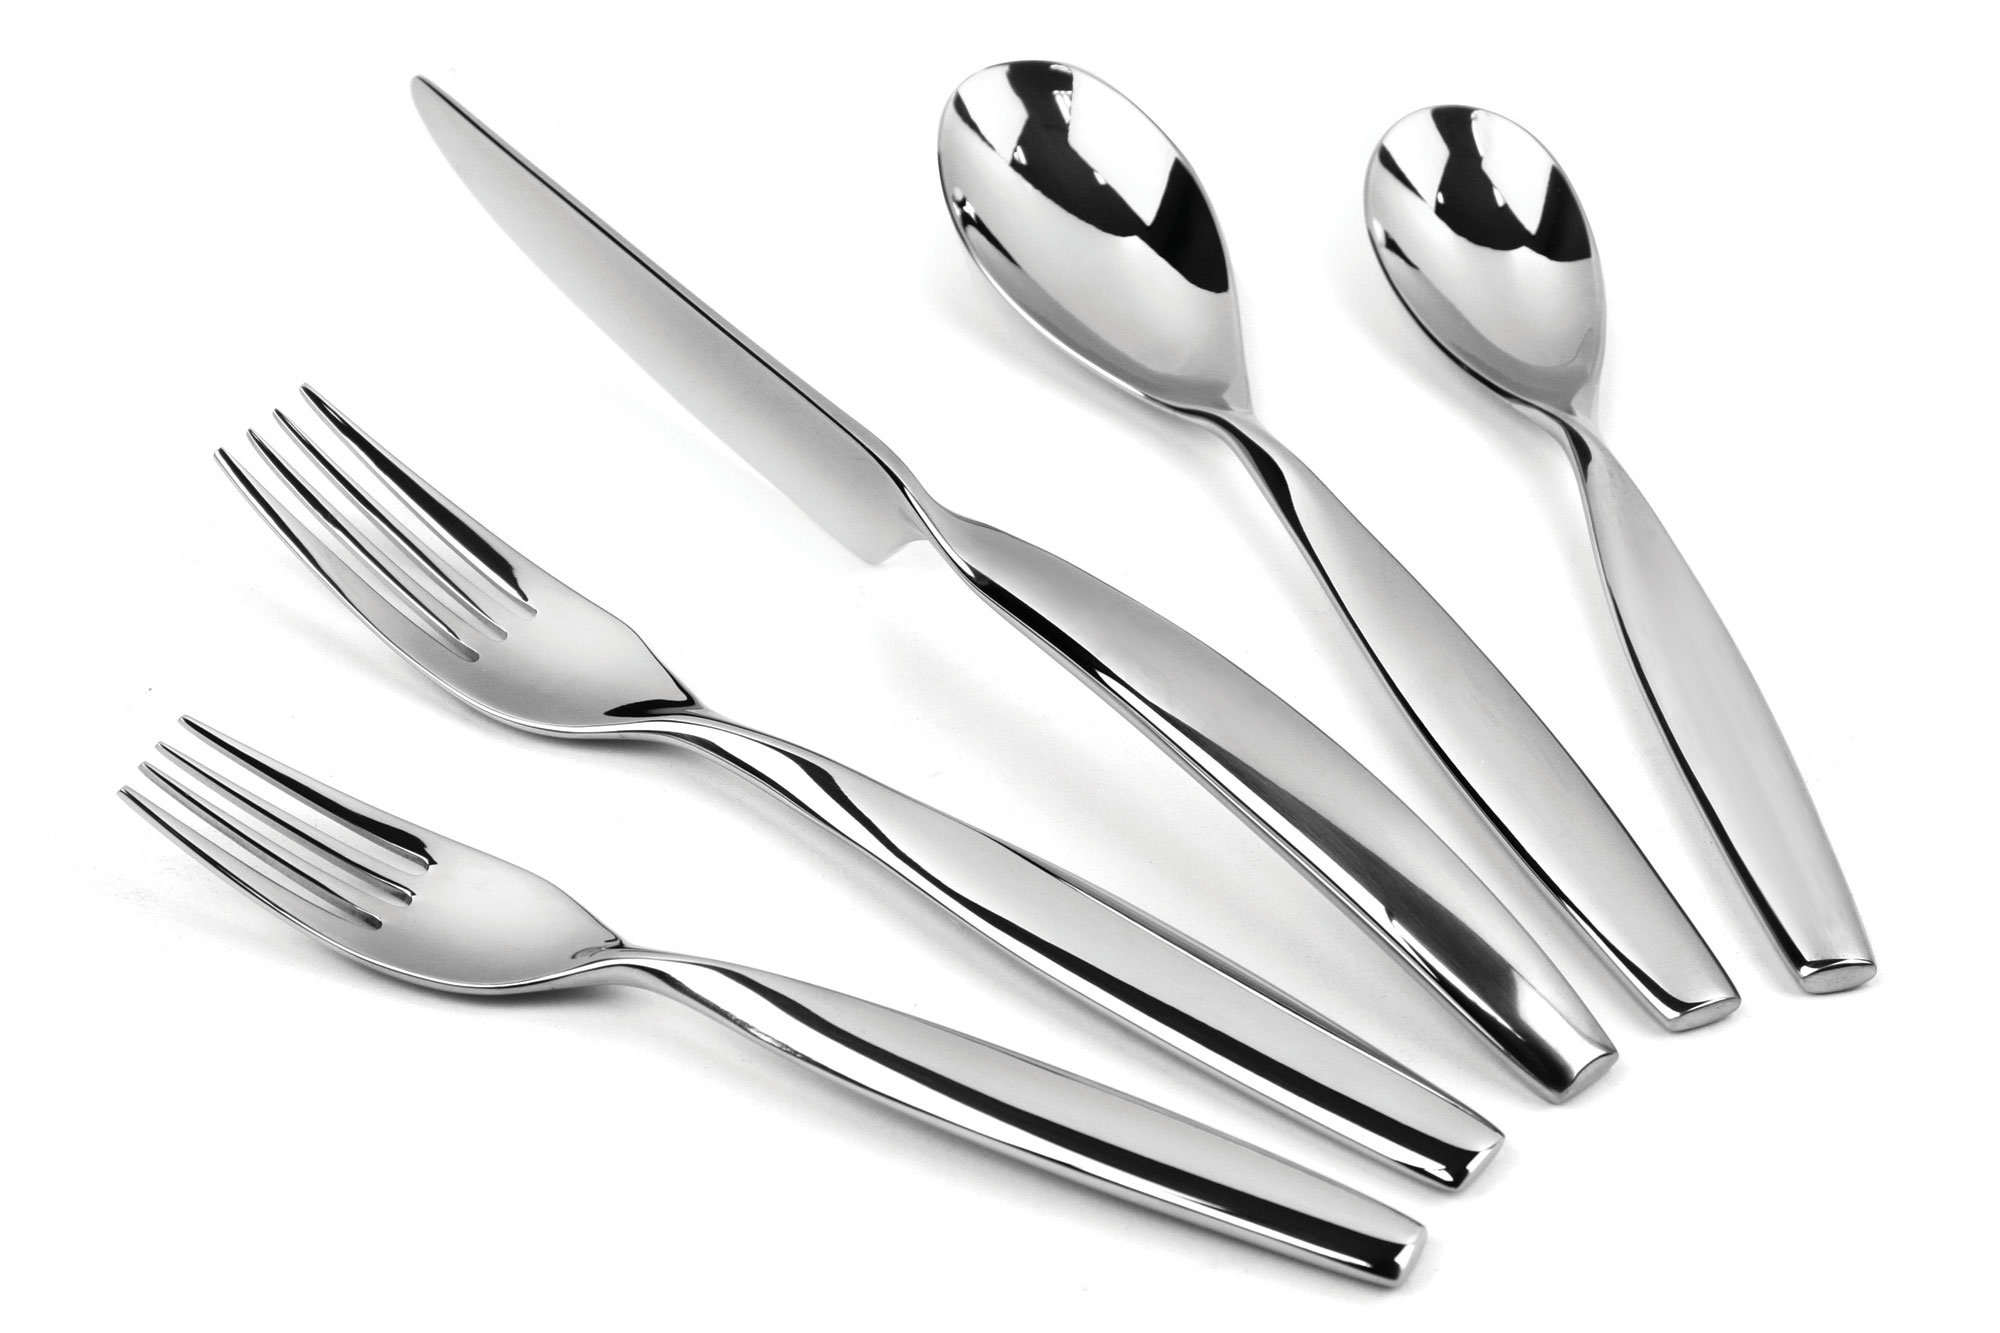 Yamazaki Swivel Stainless Steel Flatware Set 20 Piece